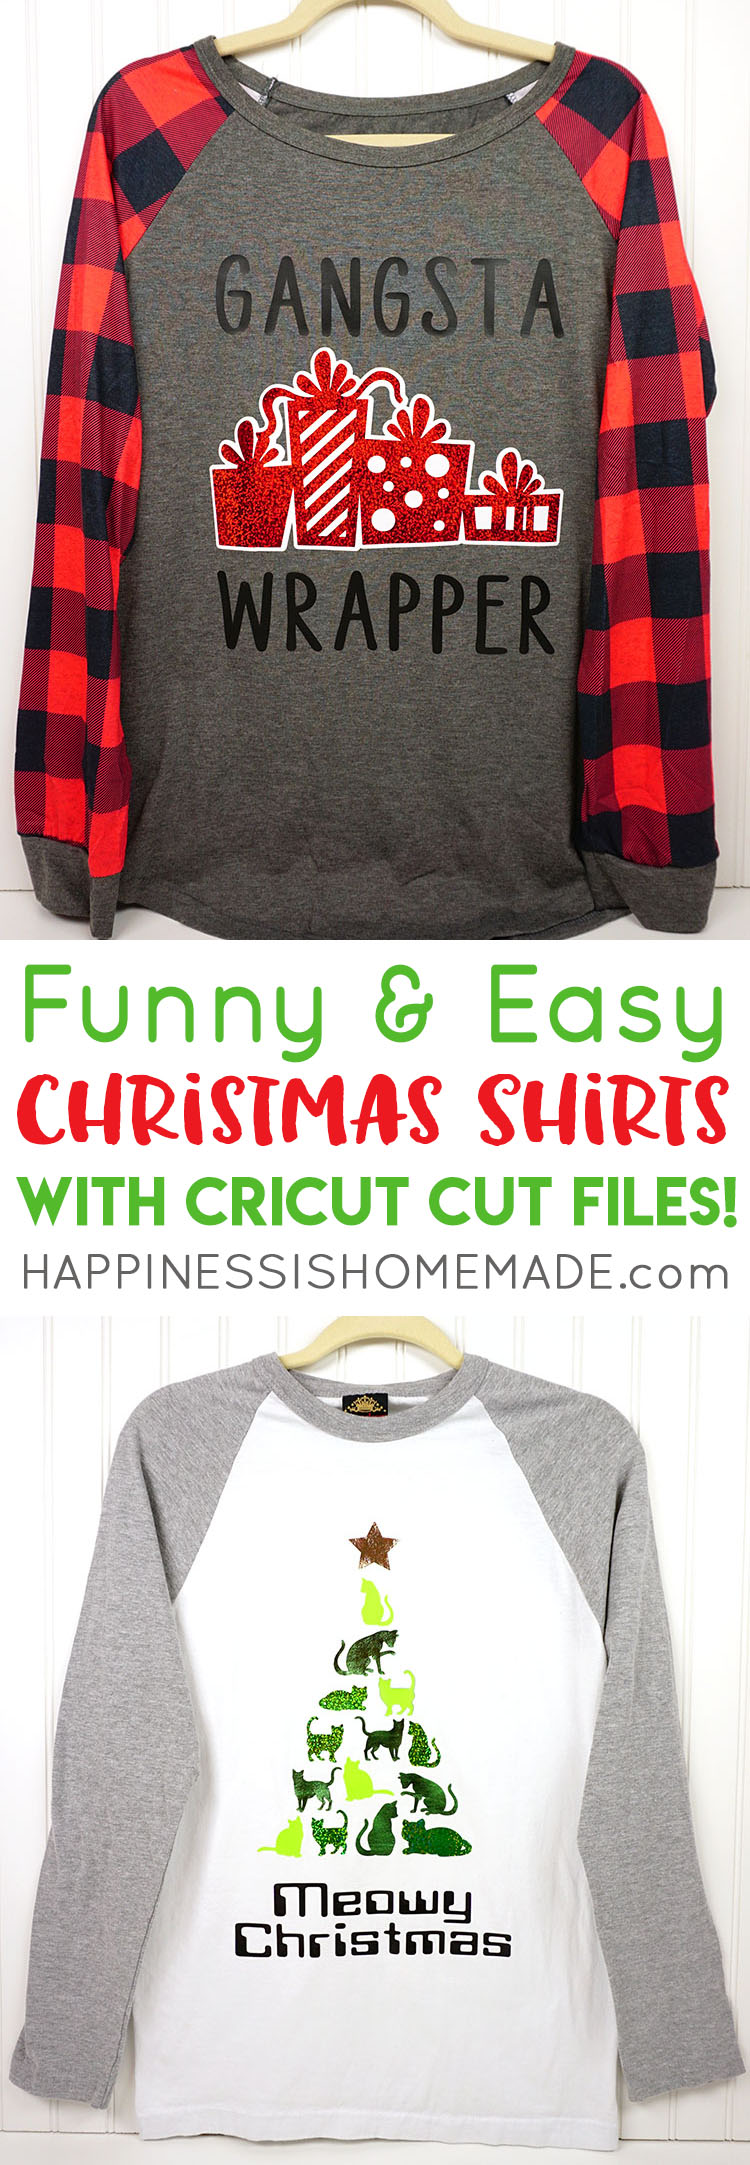 422e2c2e Funny Christmas Shirts with Cricut + Cut Files! - Happiness is Homemade